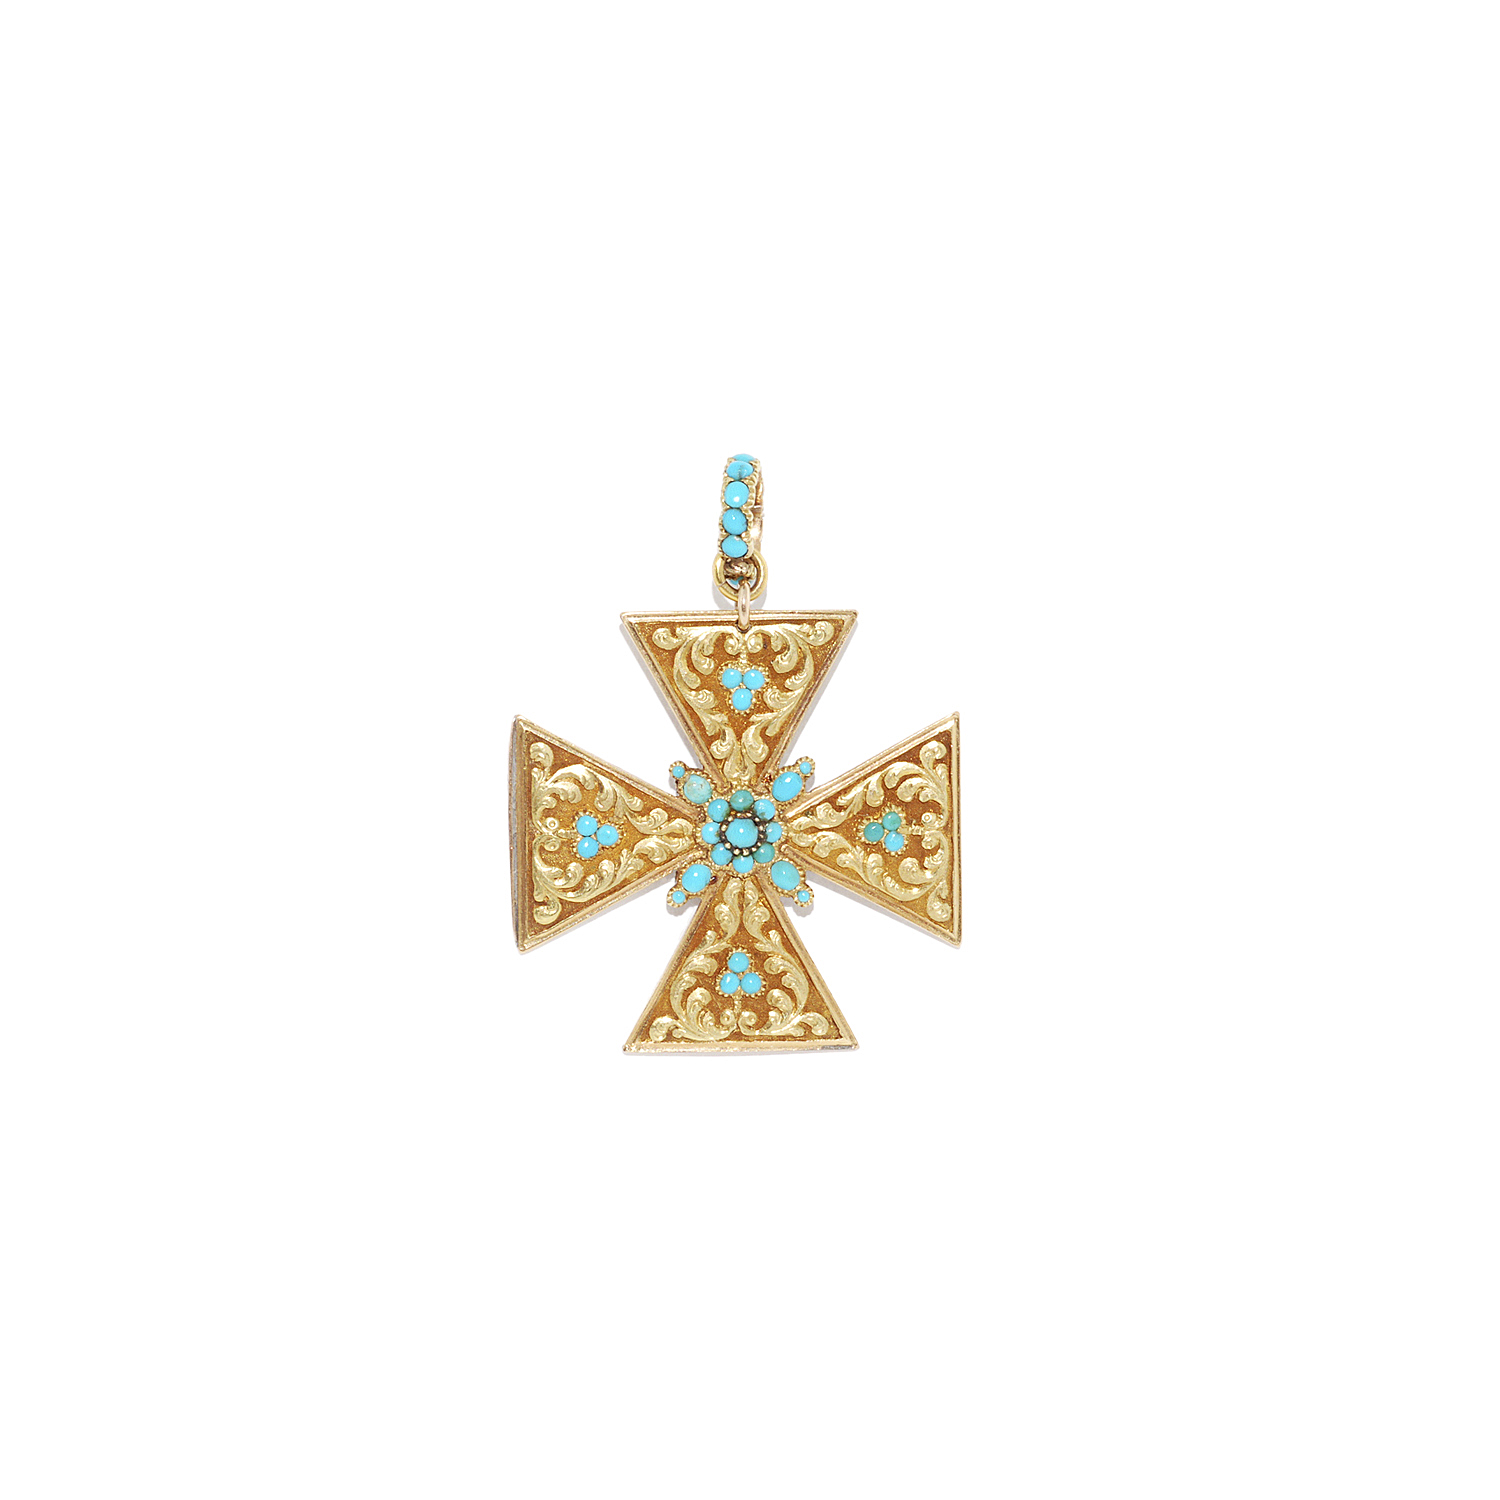 Antique 18K Yellow Gold and Turquoise Engraved Maltese Cross Pendant Style N-27601-FL-0-0